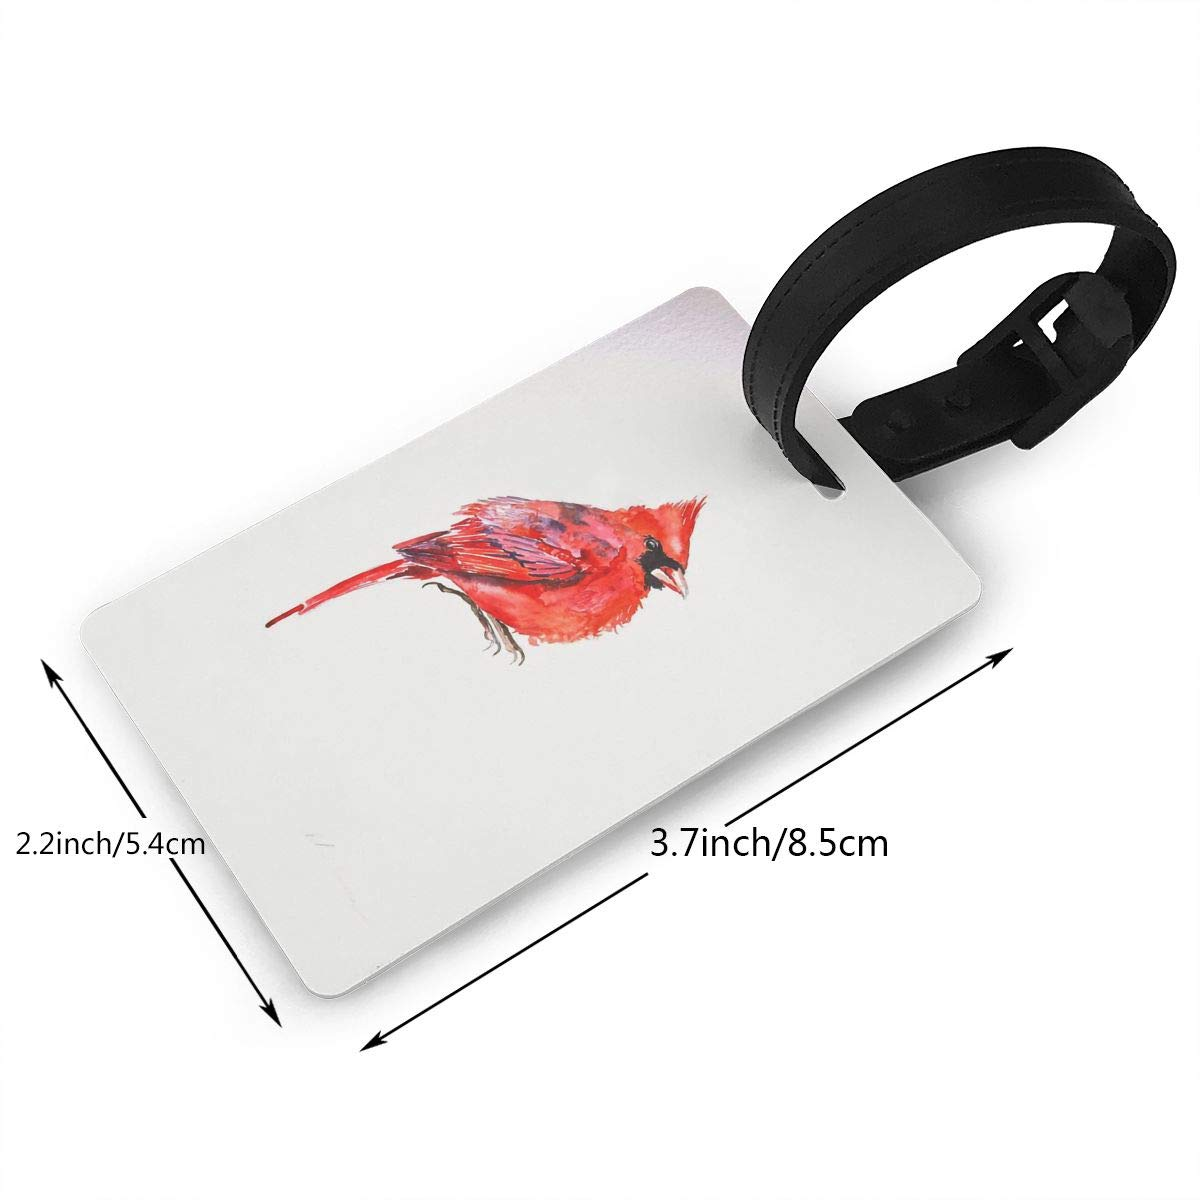 Cardinals Bird Cruise Luggage Tag For Suitcase Bag Accessories 2 Pack Luggage Tags